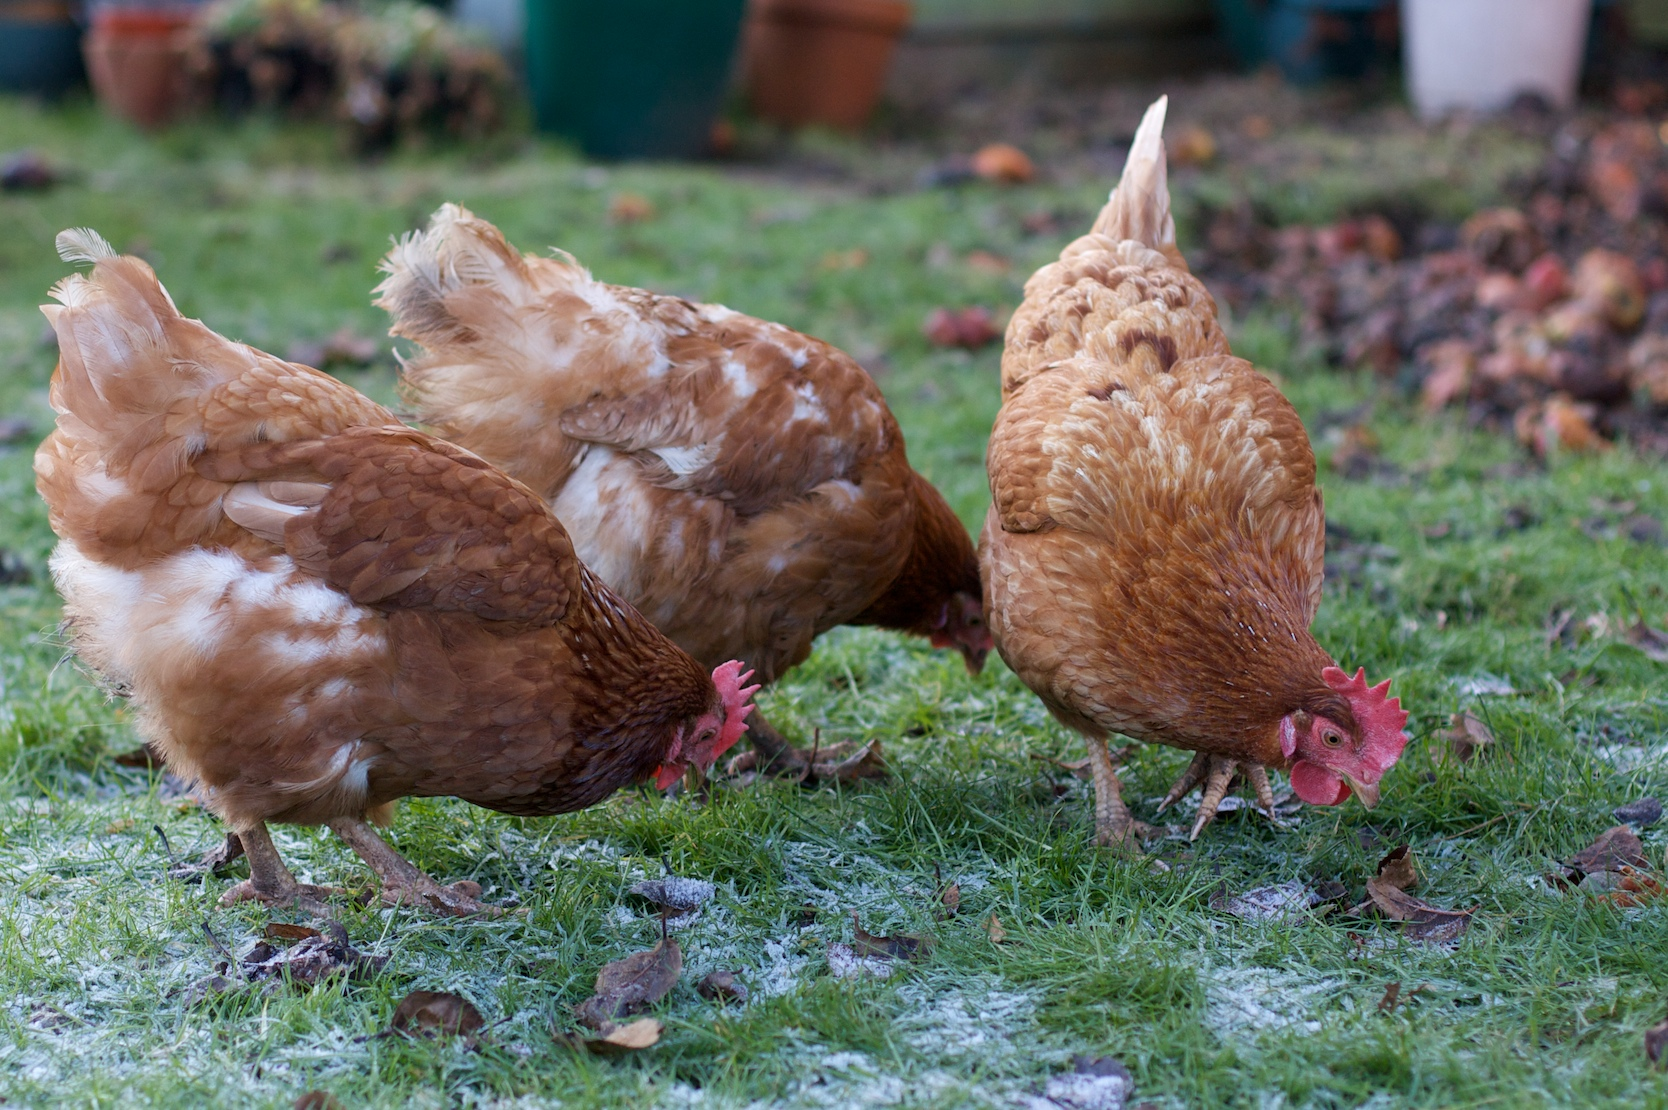 Winter Tips To Keep Your Ens Cosy That Are Healthy And